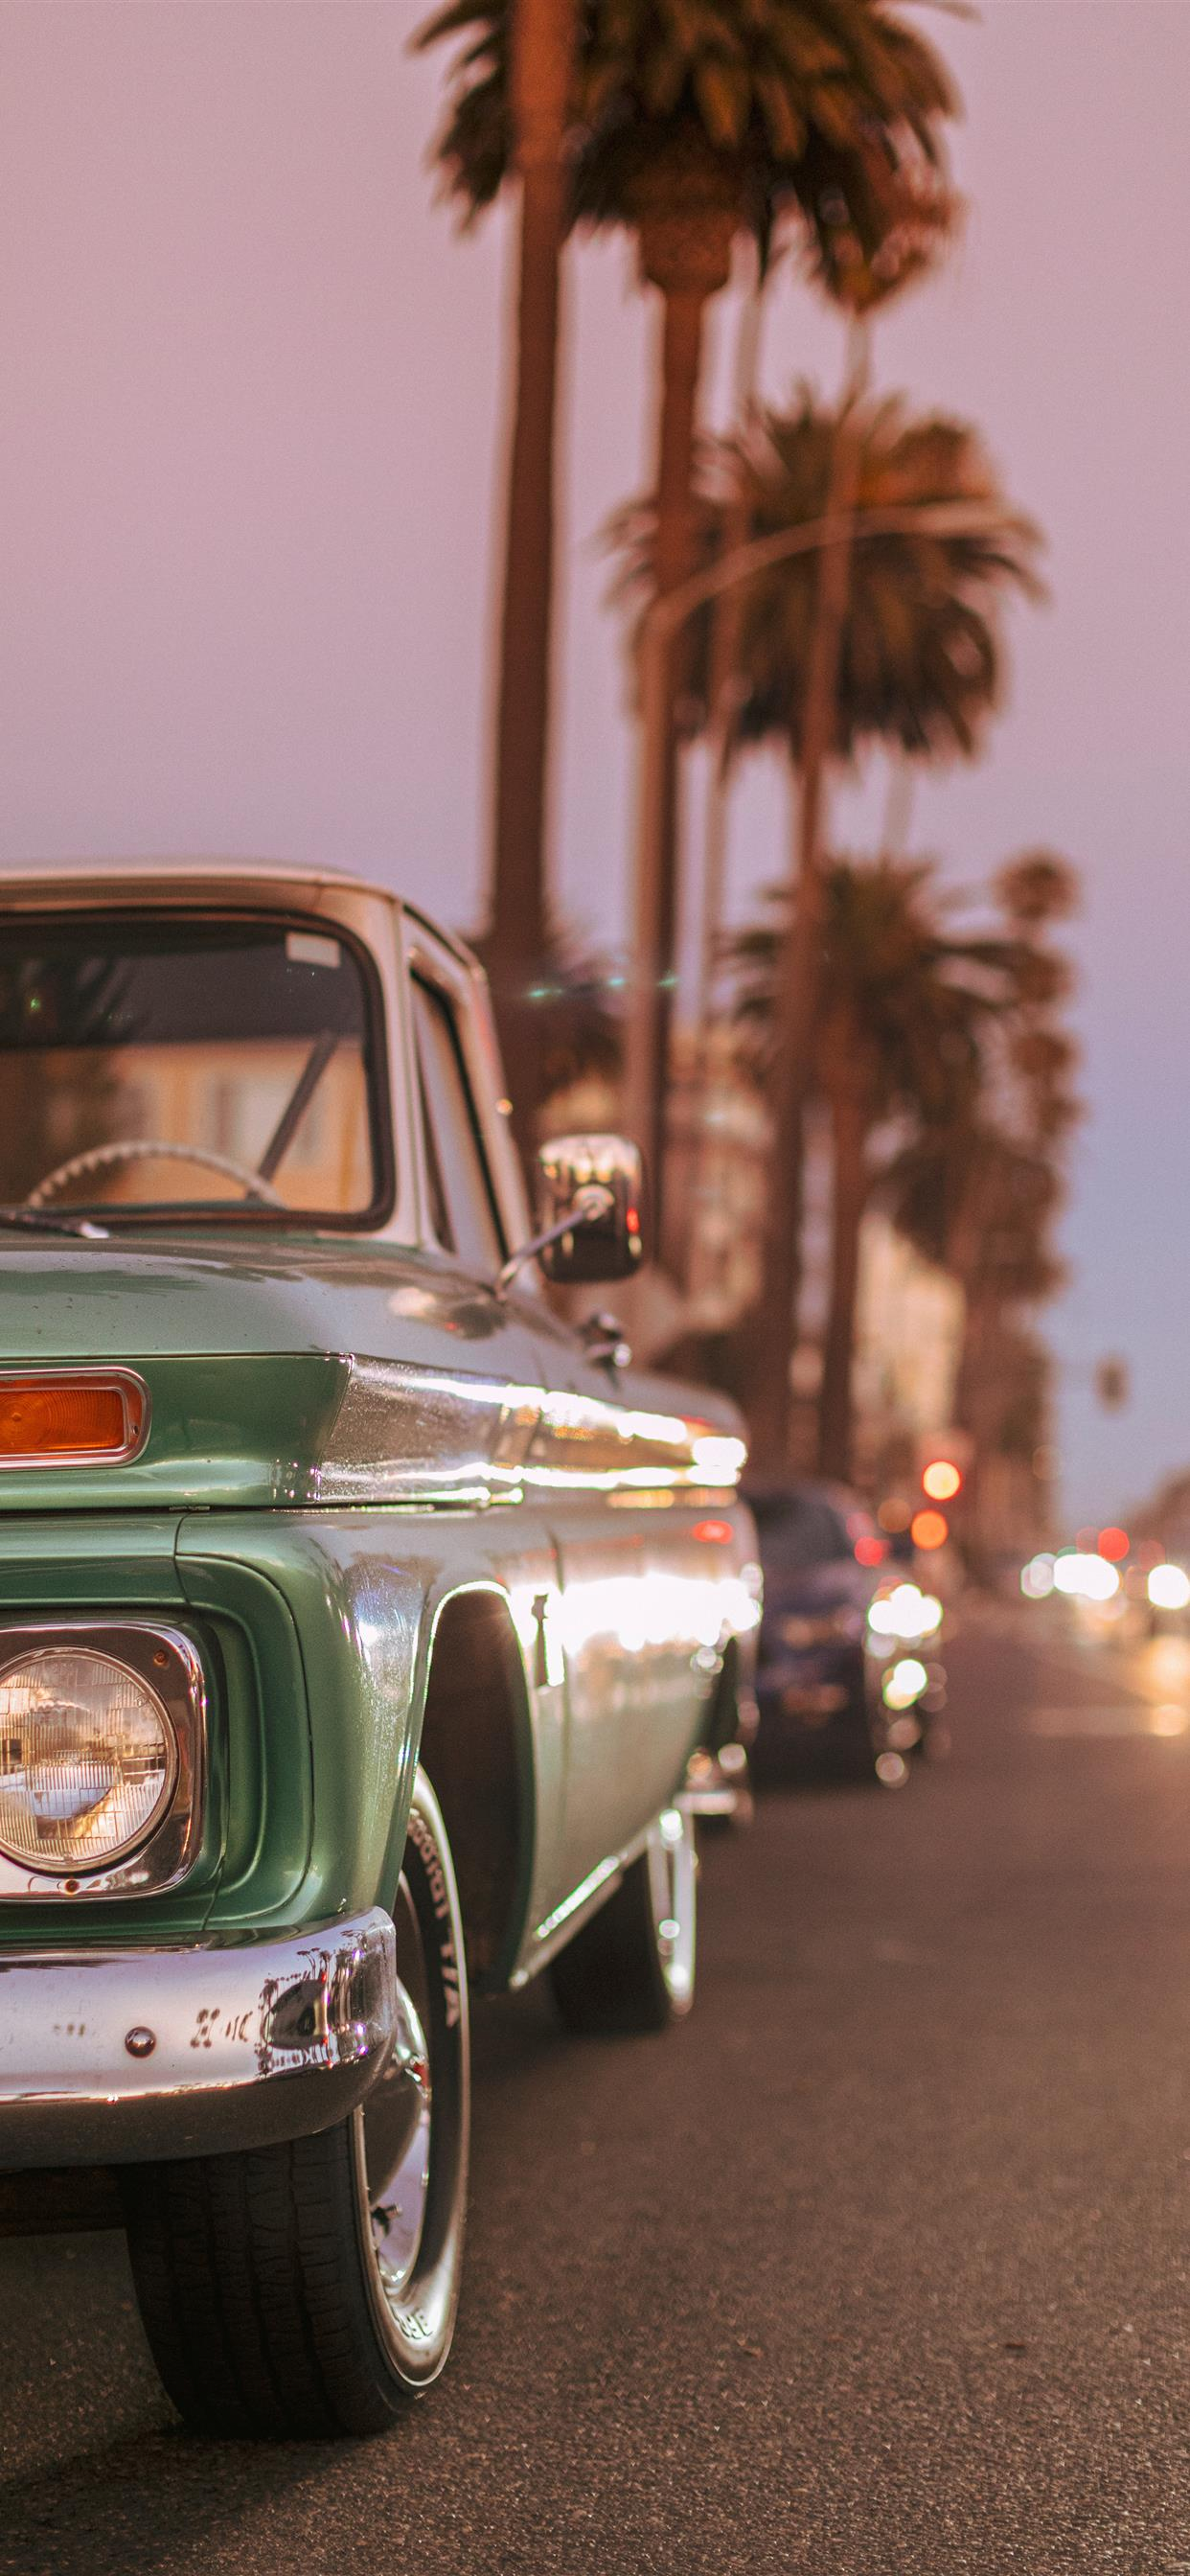 Vintage car parked on Ocean Blvd during sunset  iphone xs max wallpaper